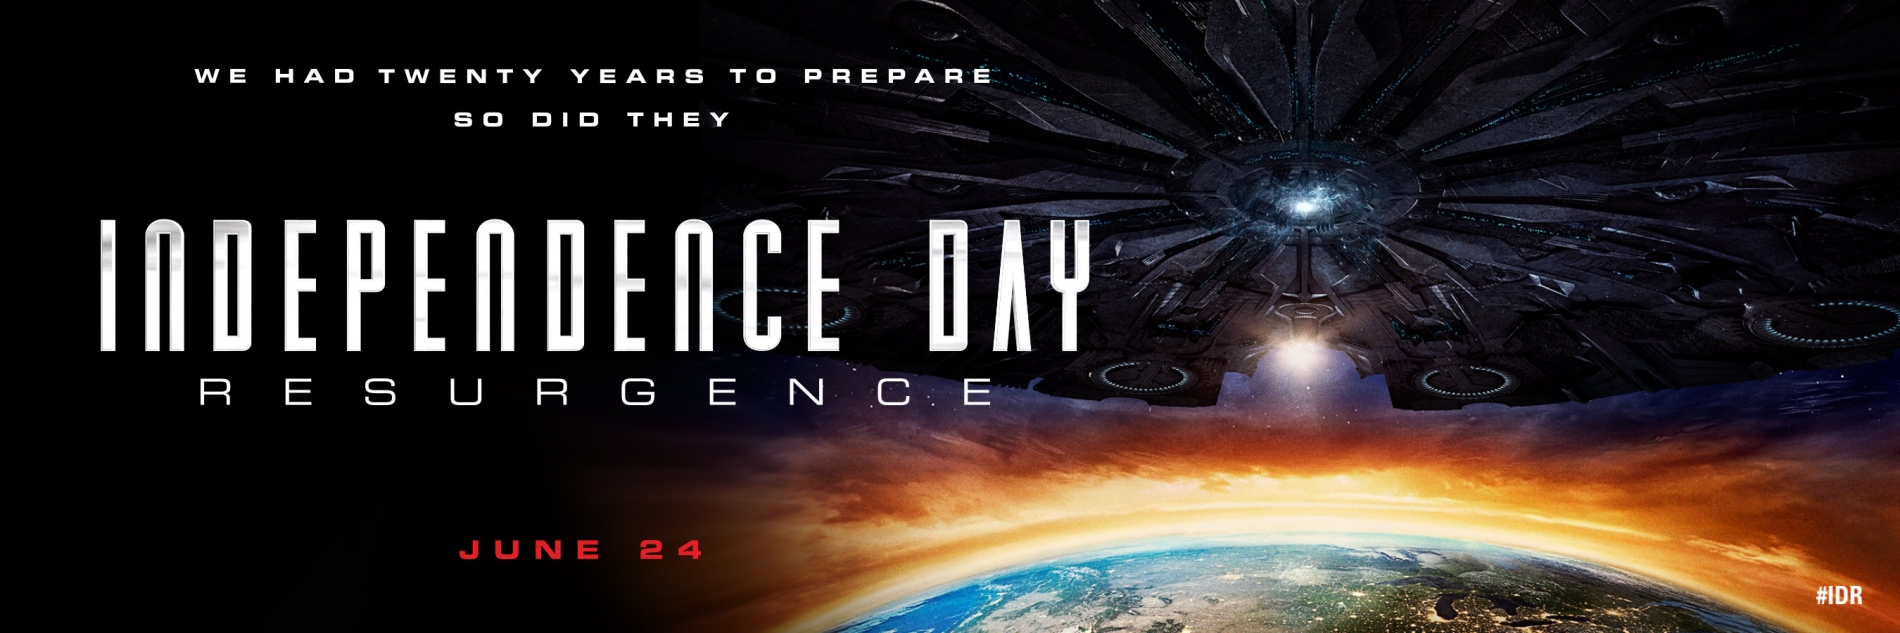 Latest Independence Day Resurgence Trailer Promises A Bigger Spectacle Than Before independence day film header v4 front main stage